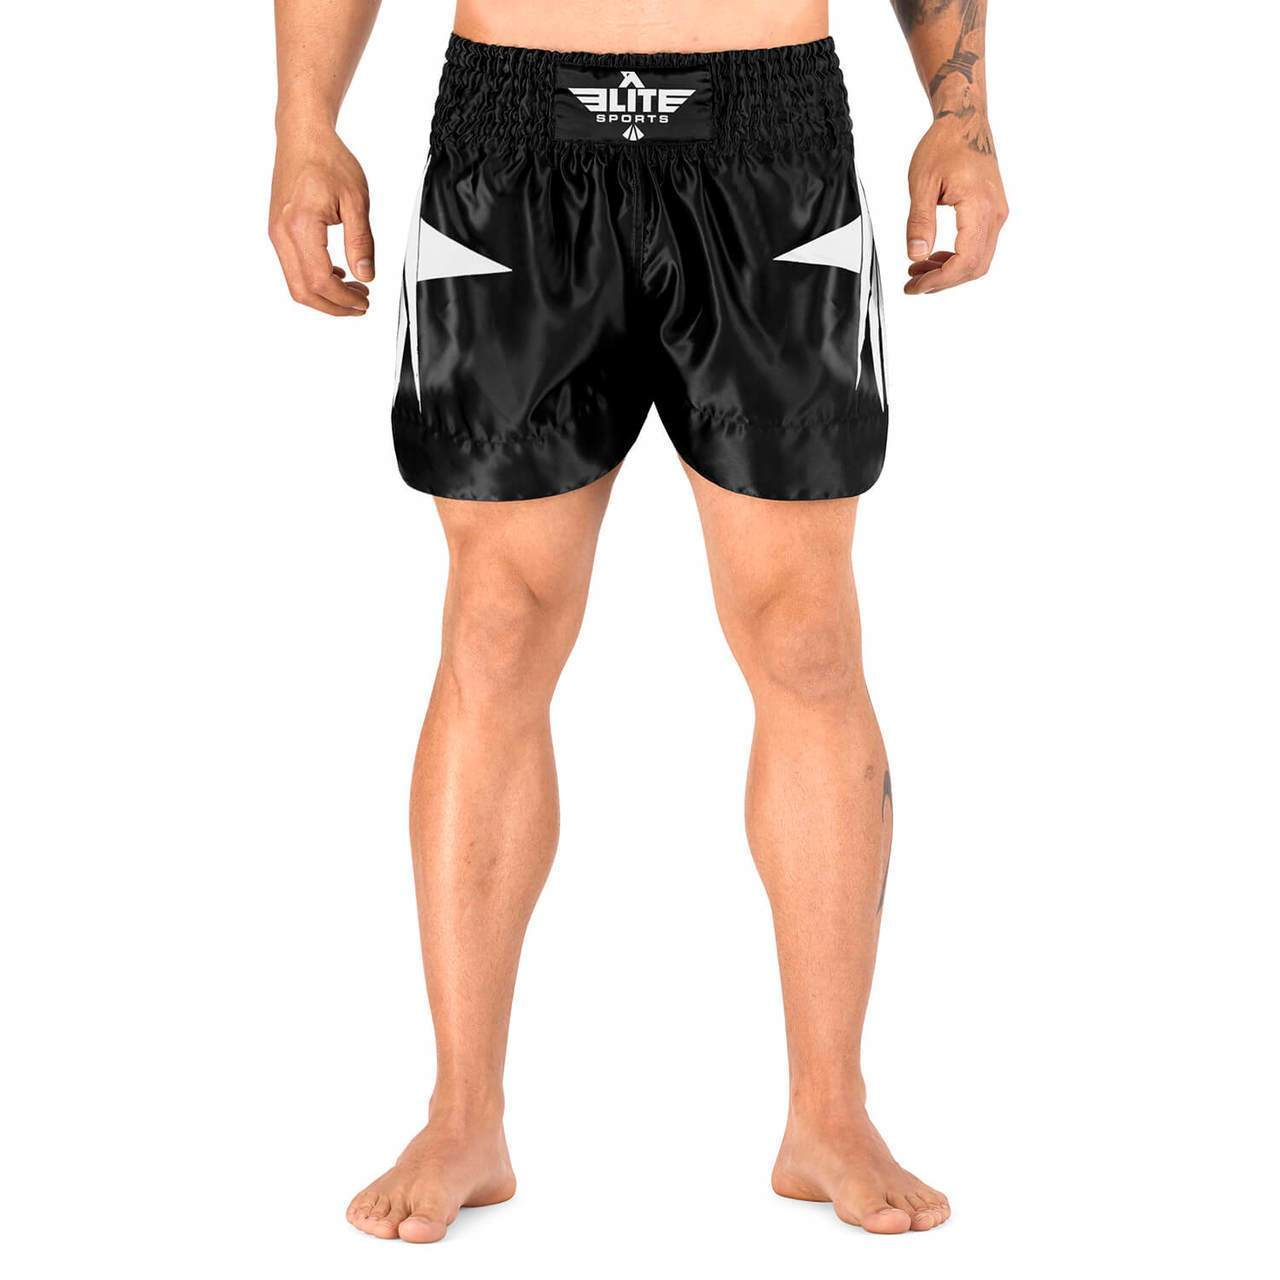 Elite Sports Star Series Sublimation Black/White Muay Thai Shorts